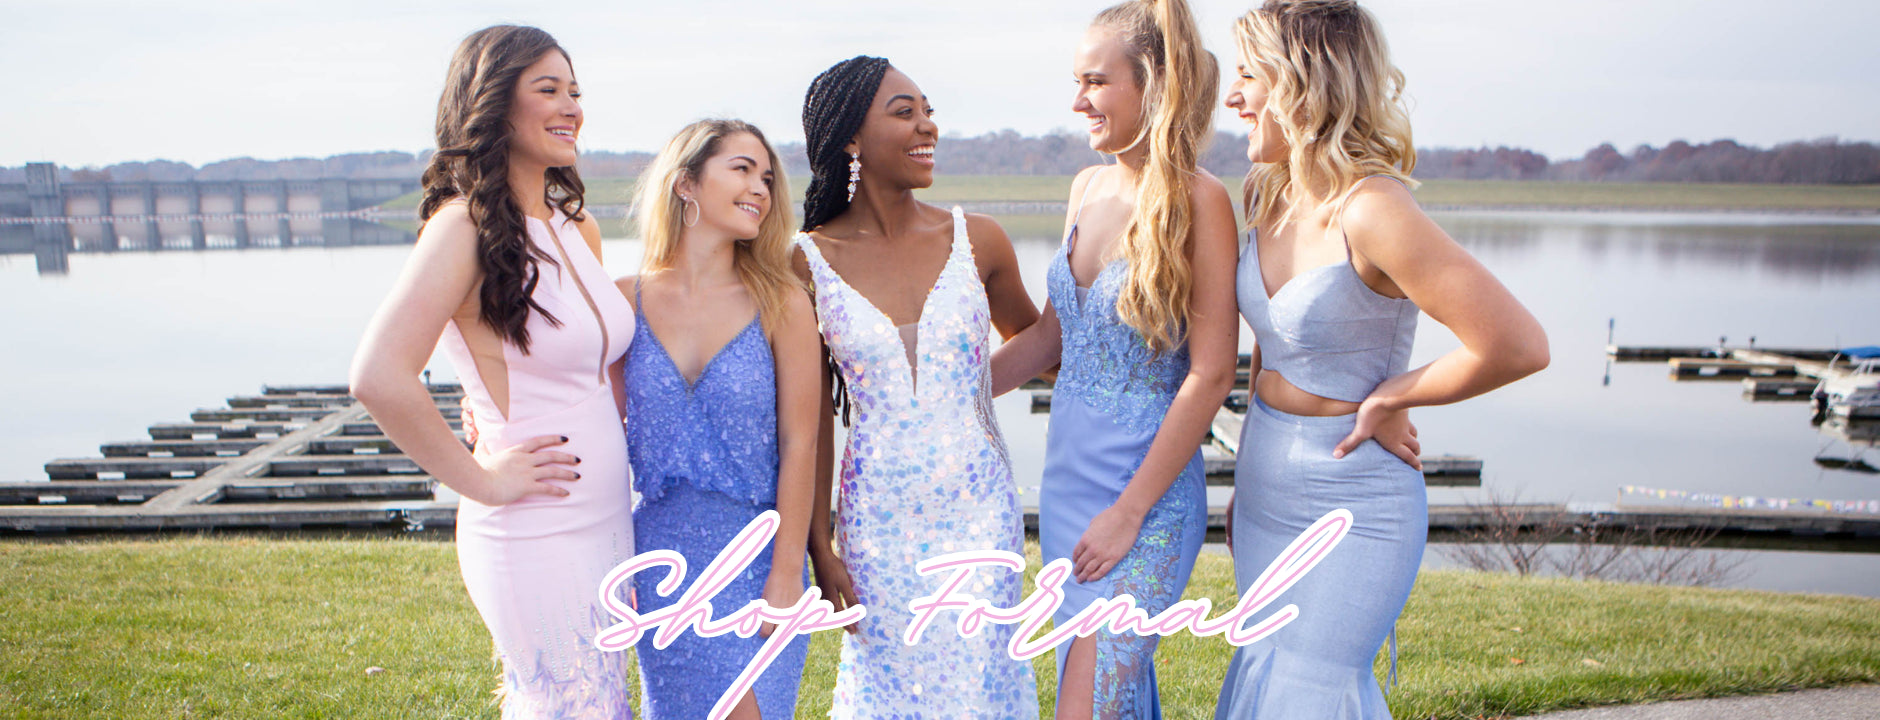 RaeLynn's Boutique Prom 2018 Dresses